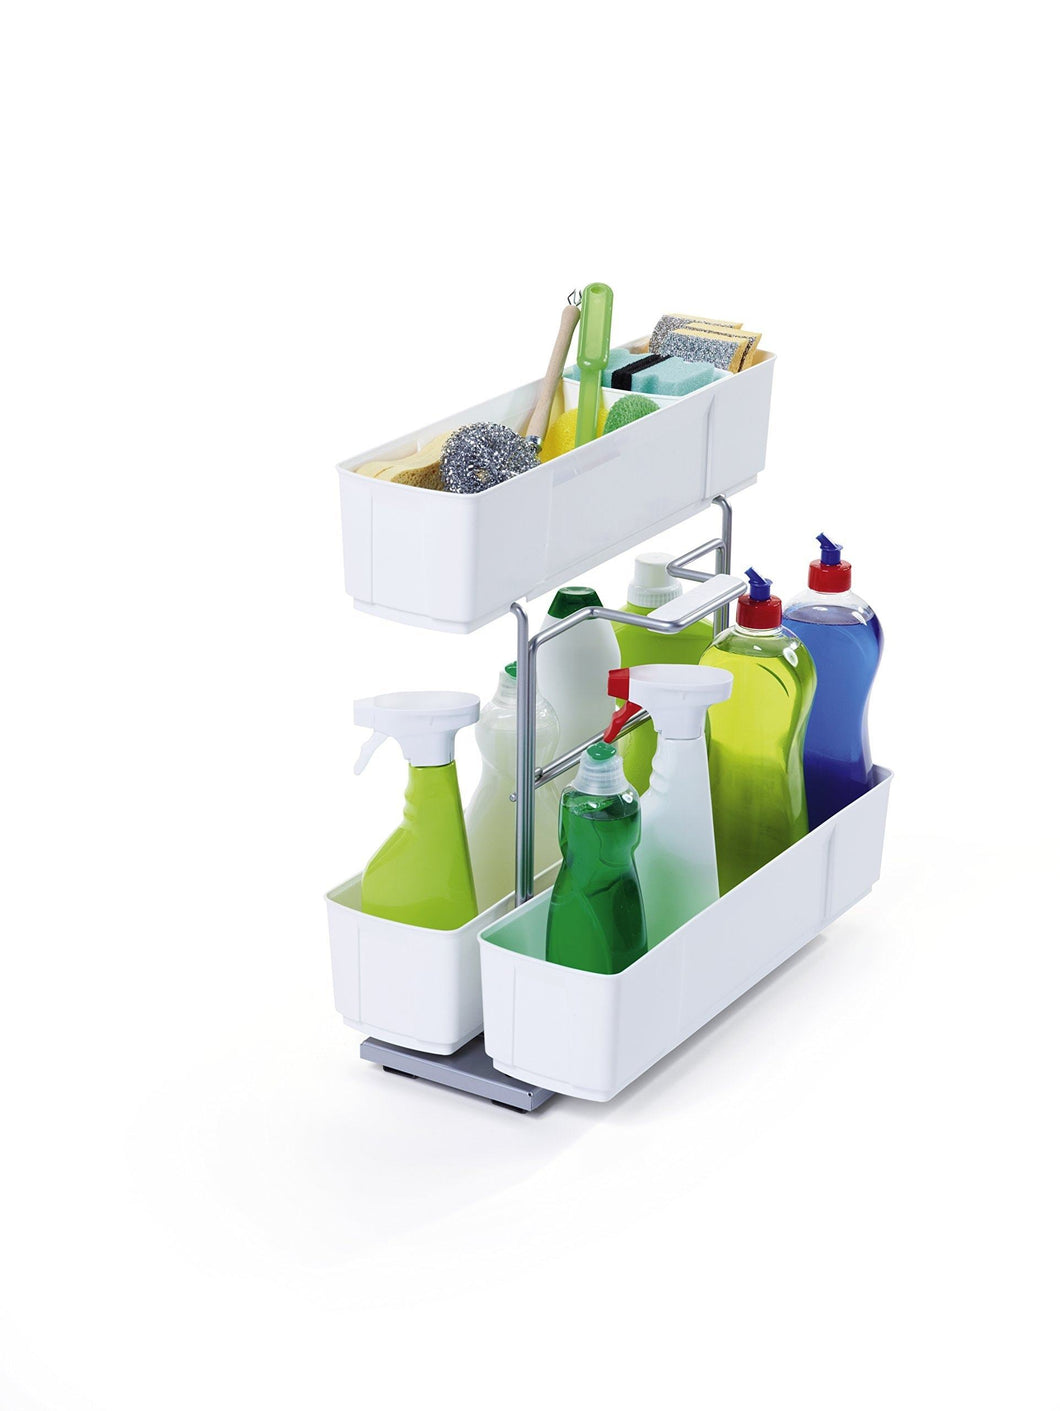 Great cleaningagent under sink organizer chrome steel and white sliding pull out base cabinet storage removable carrying caddy dishwasher safe easy install